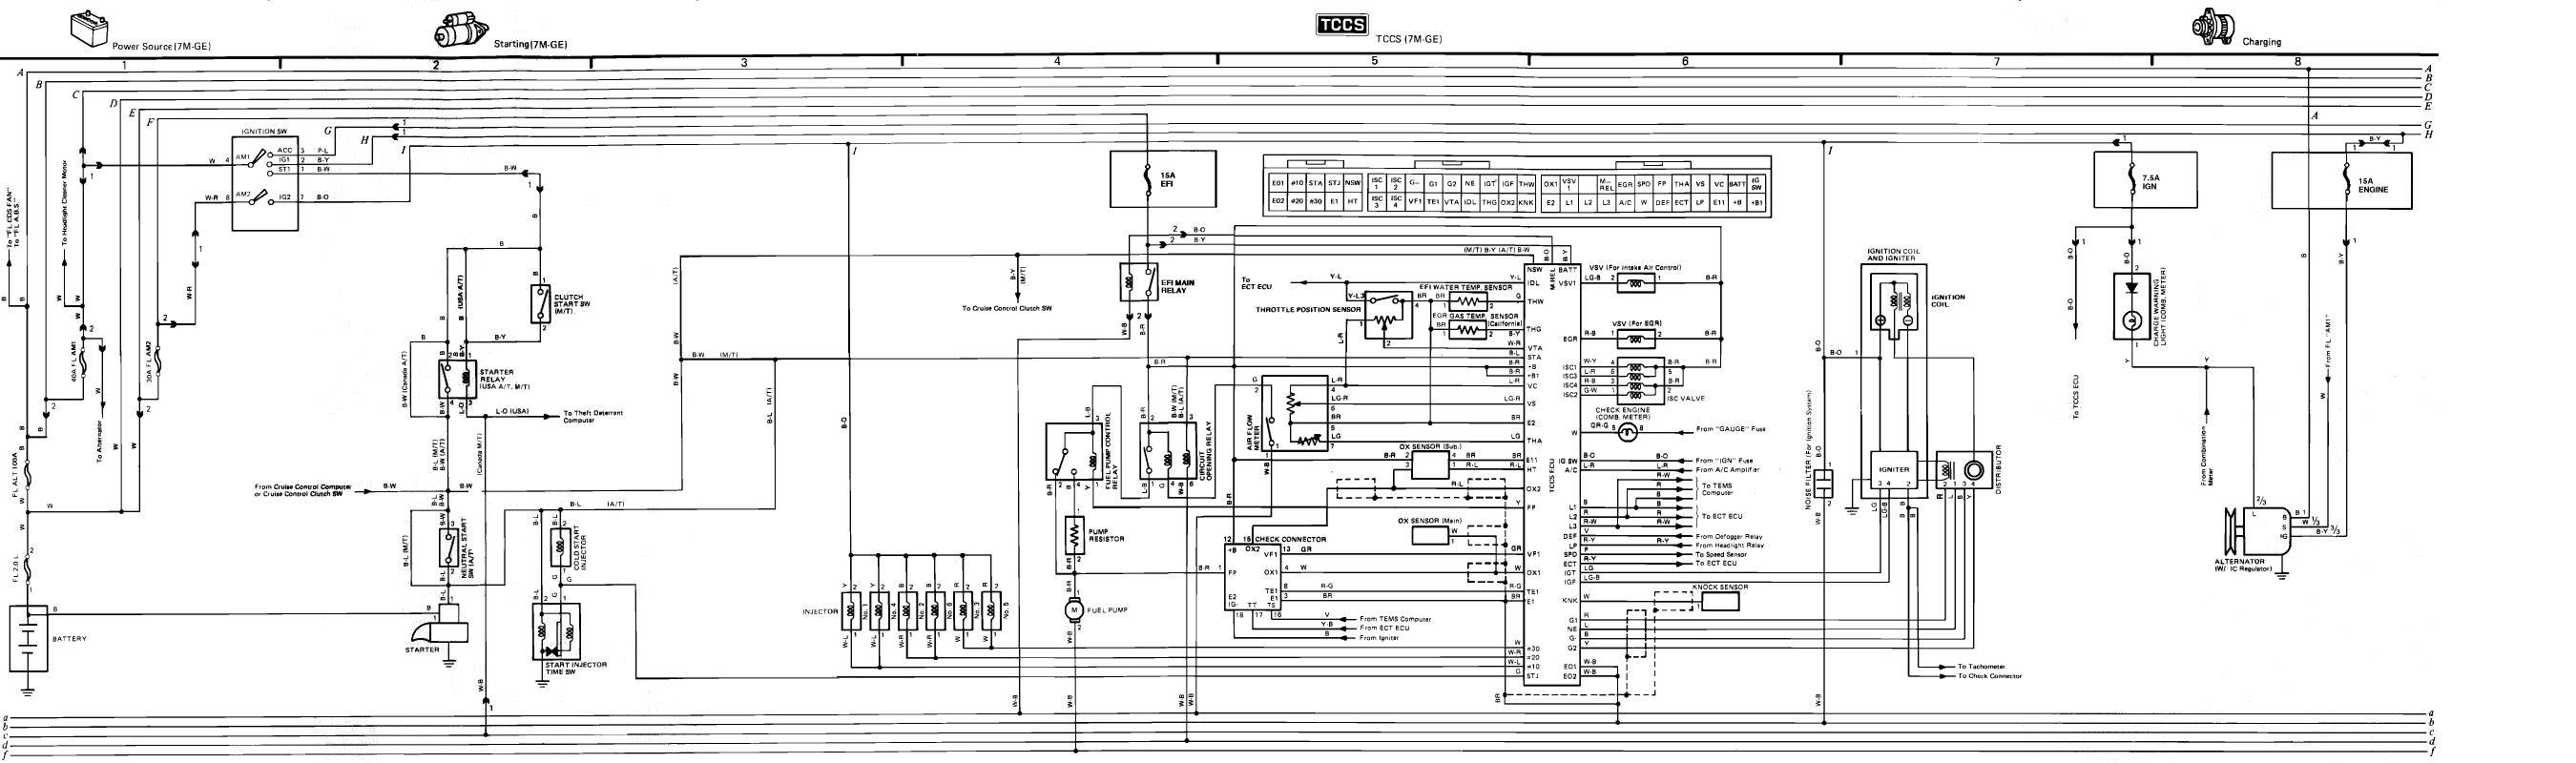 1989 Toyota Supra Ignition Wire Diagram Or Schematic From